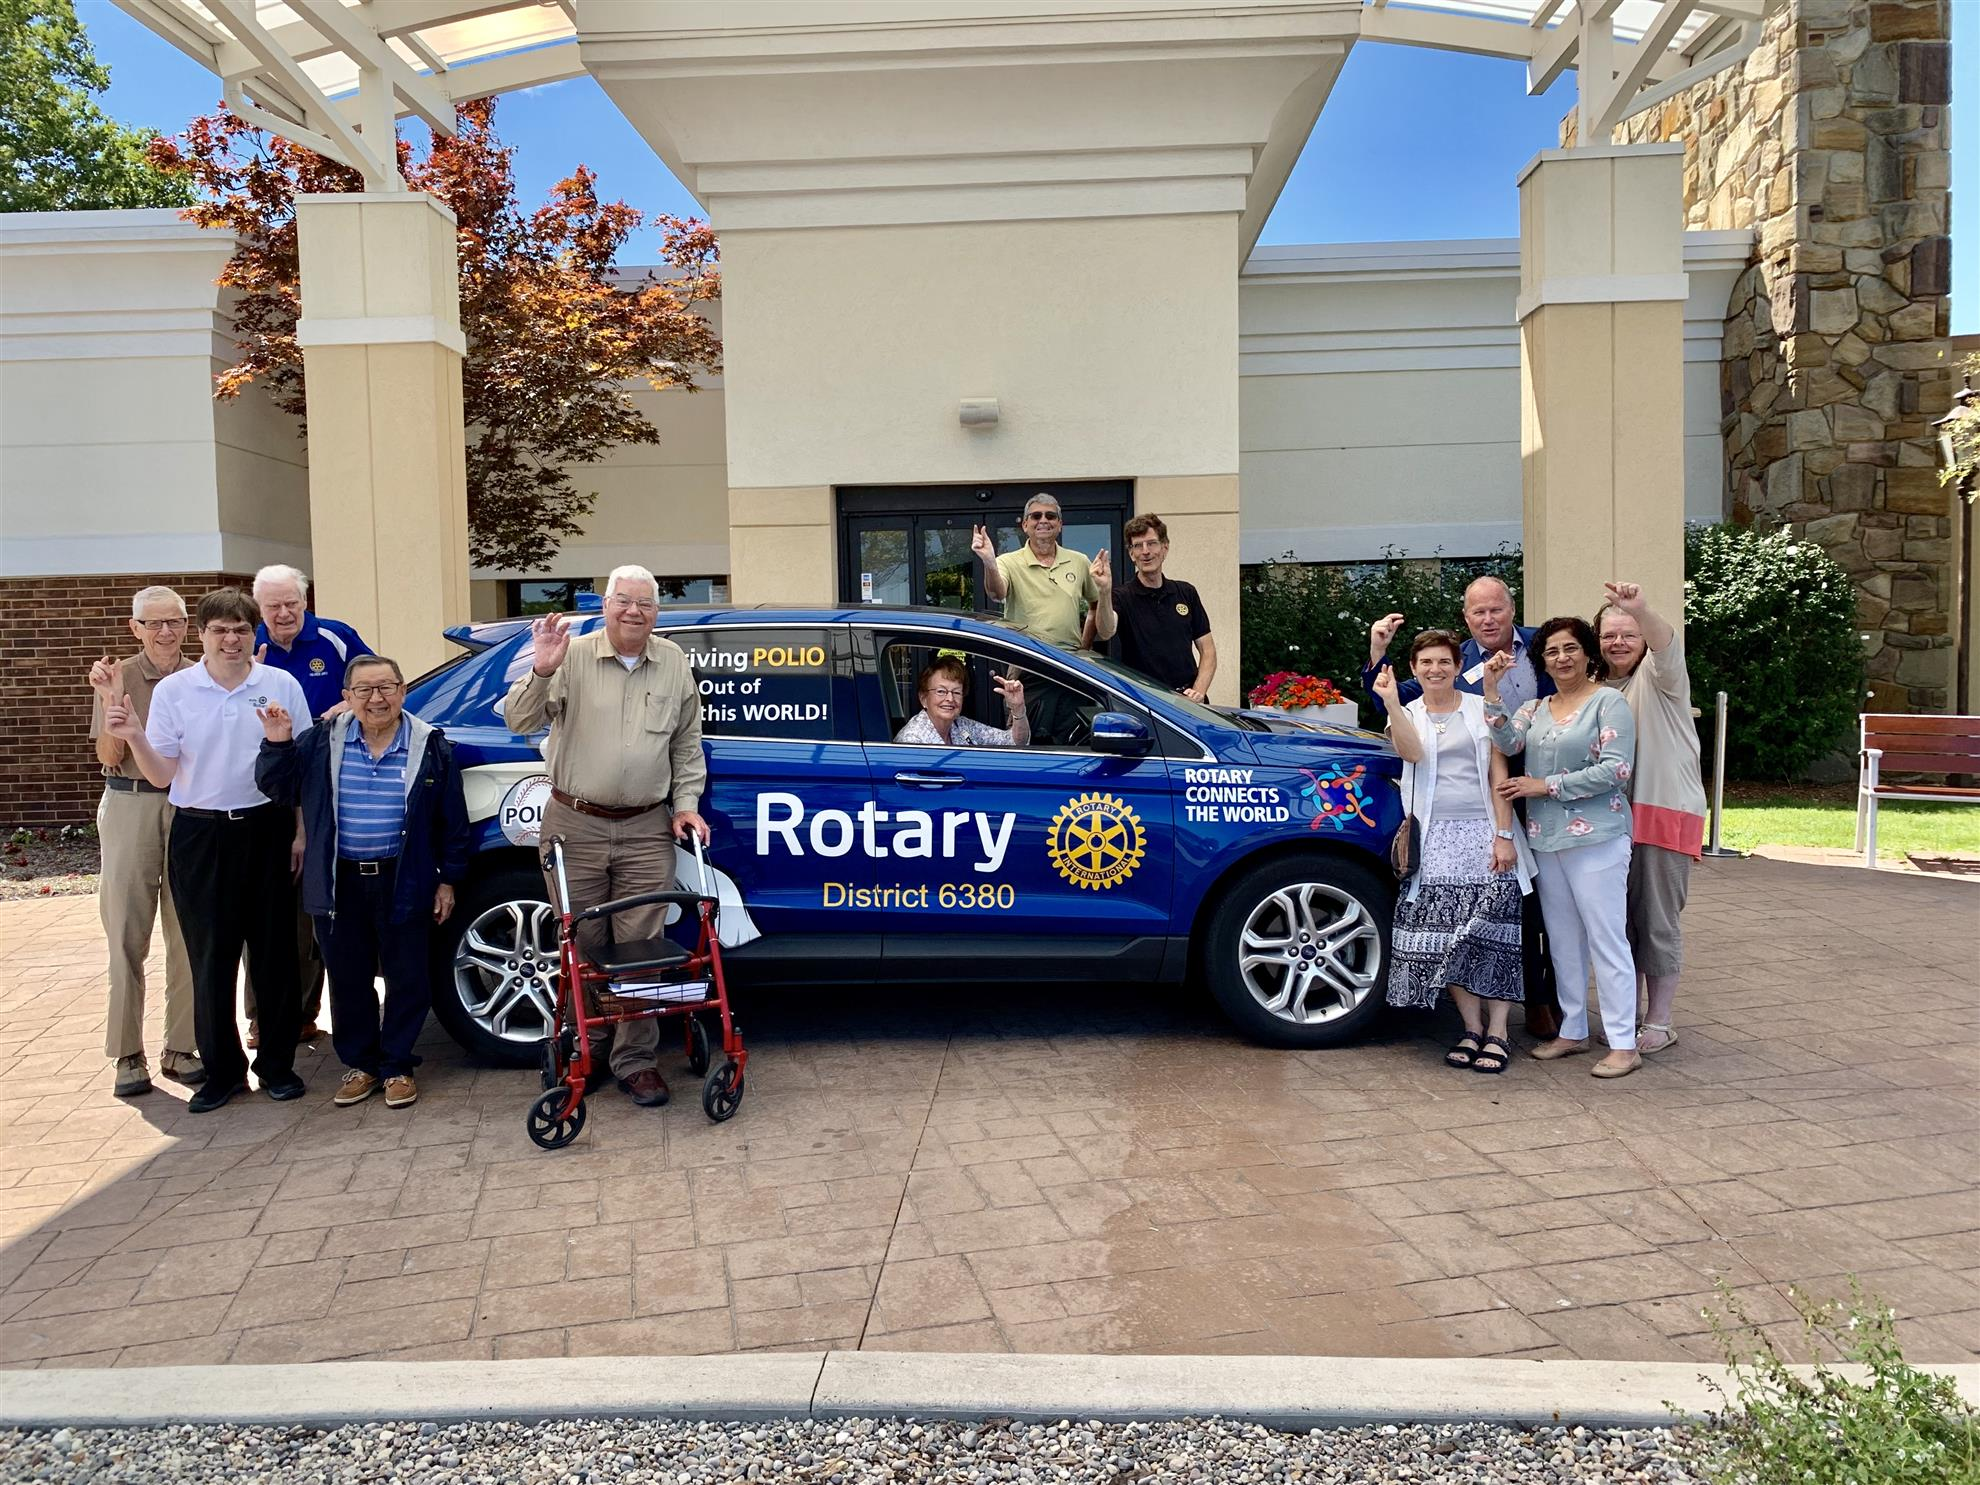 Stories | Rotary Club of Ann Arbor North